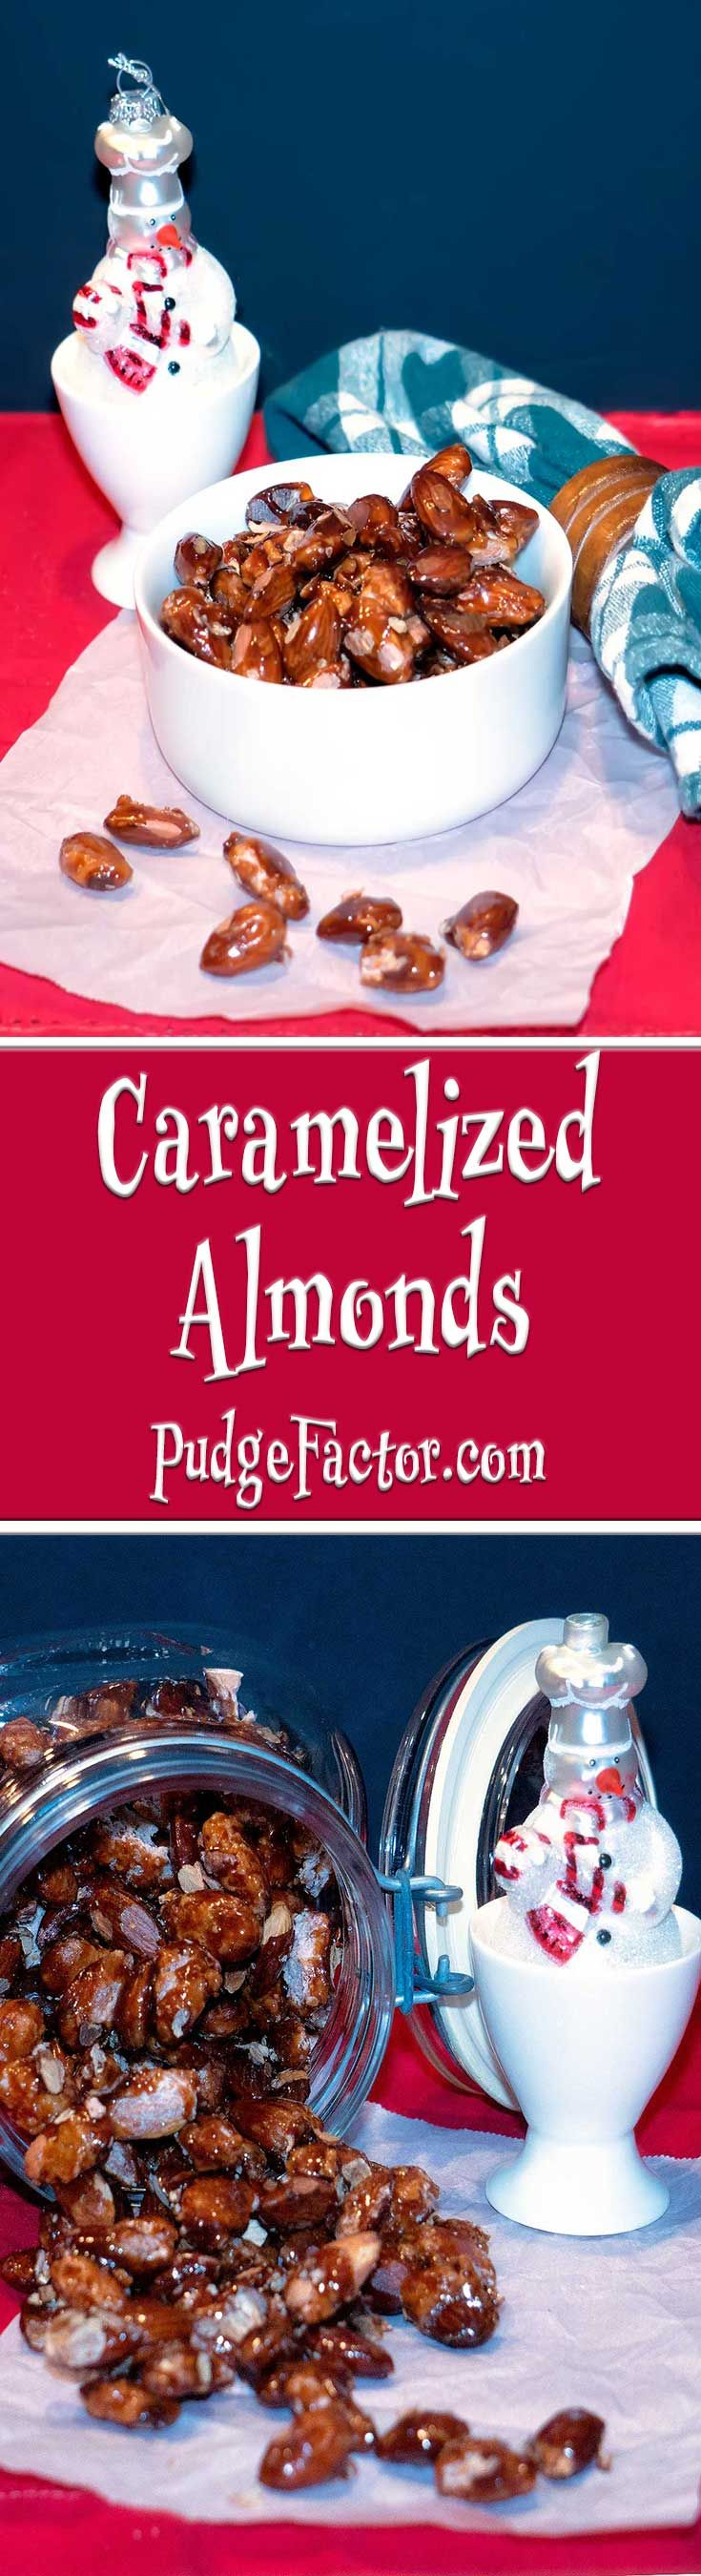 Caramelized Almonds have just the right amount of sweetness and are deliciously crunchy.